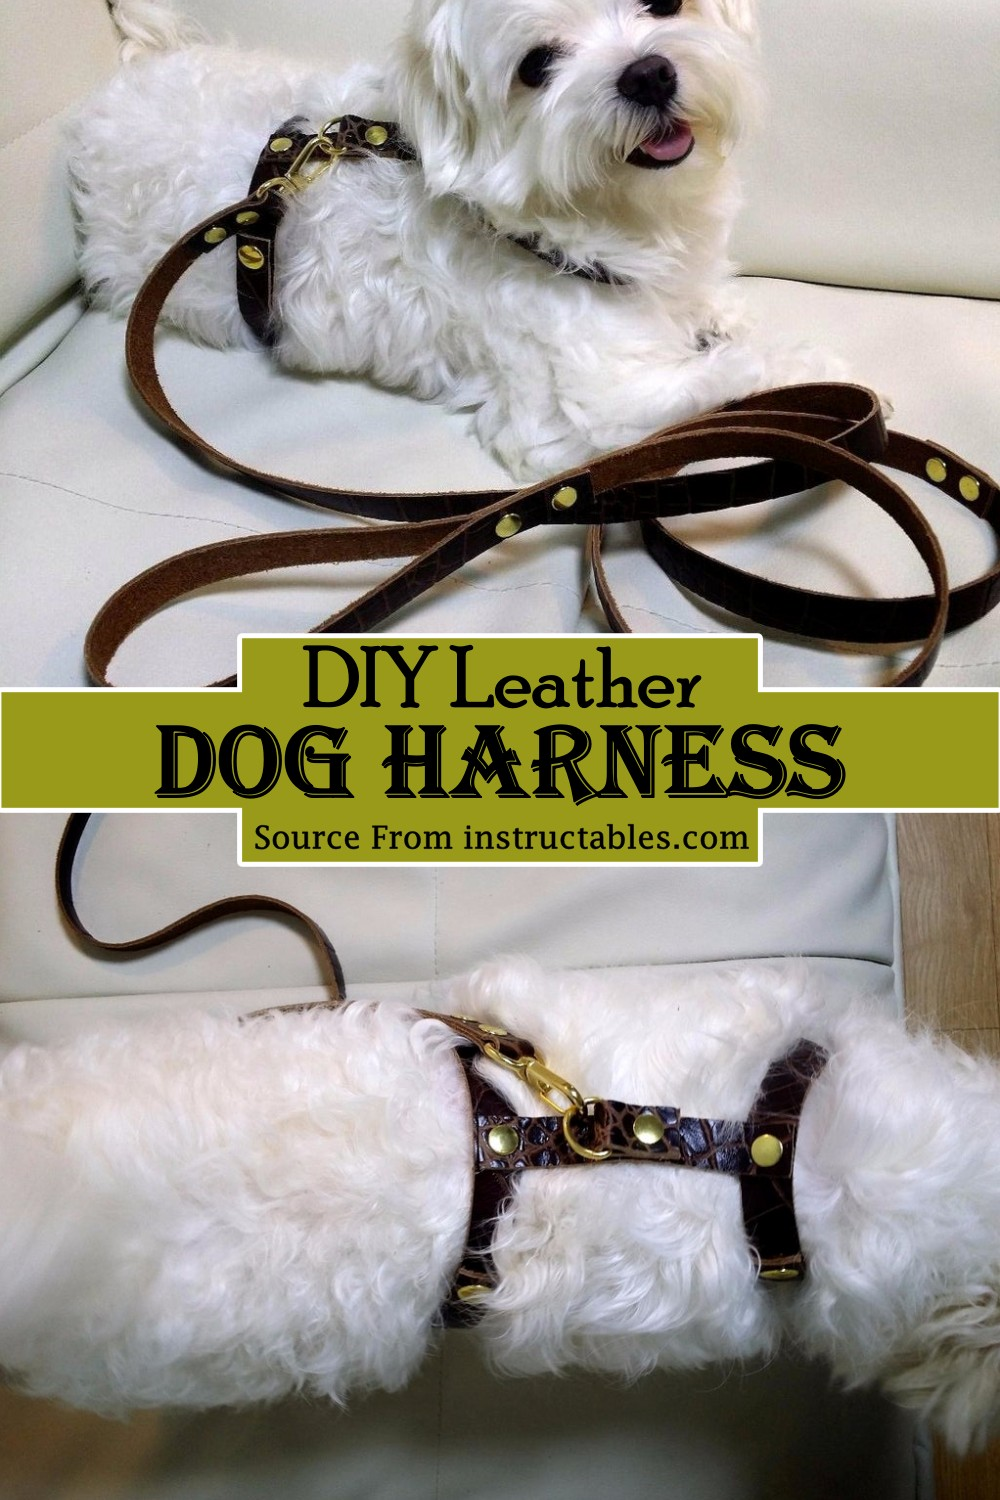 Leather Harness for your pup